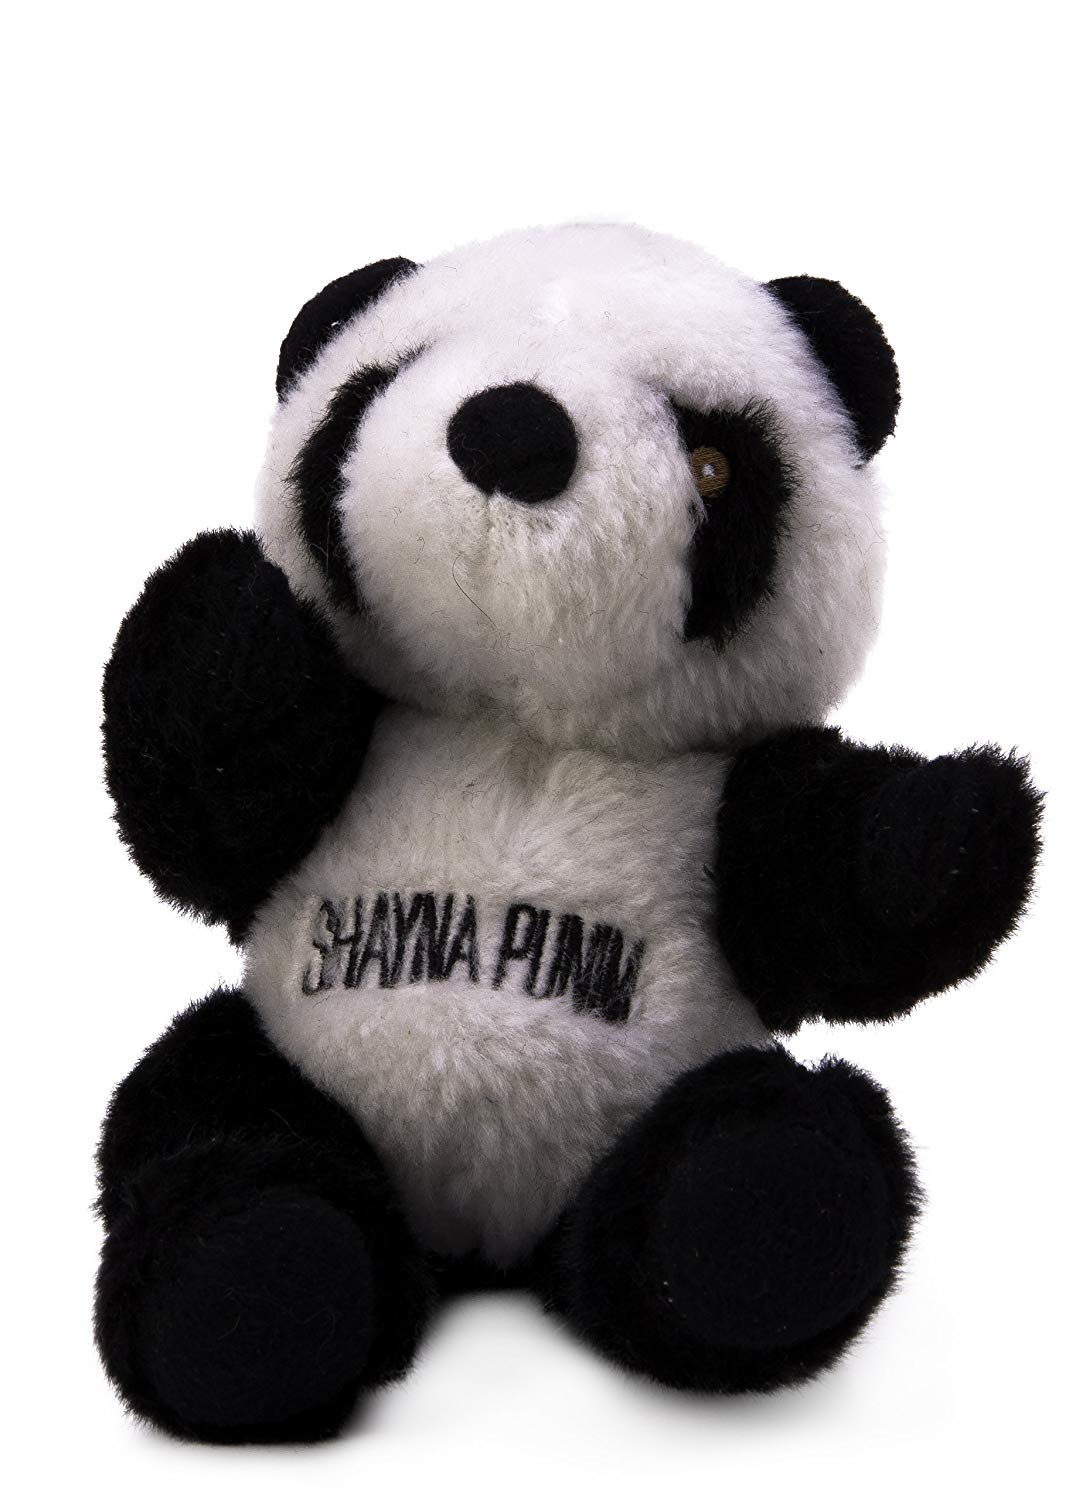 Copa Judaica Chewish Treat Shayna Punin Panda Plush Dog Toy with Squeaker, 6 by 7-Inch, Black and White